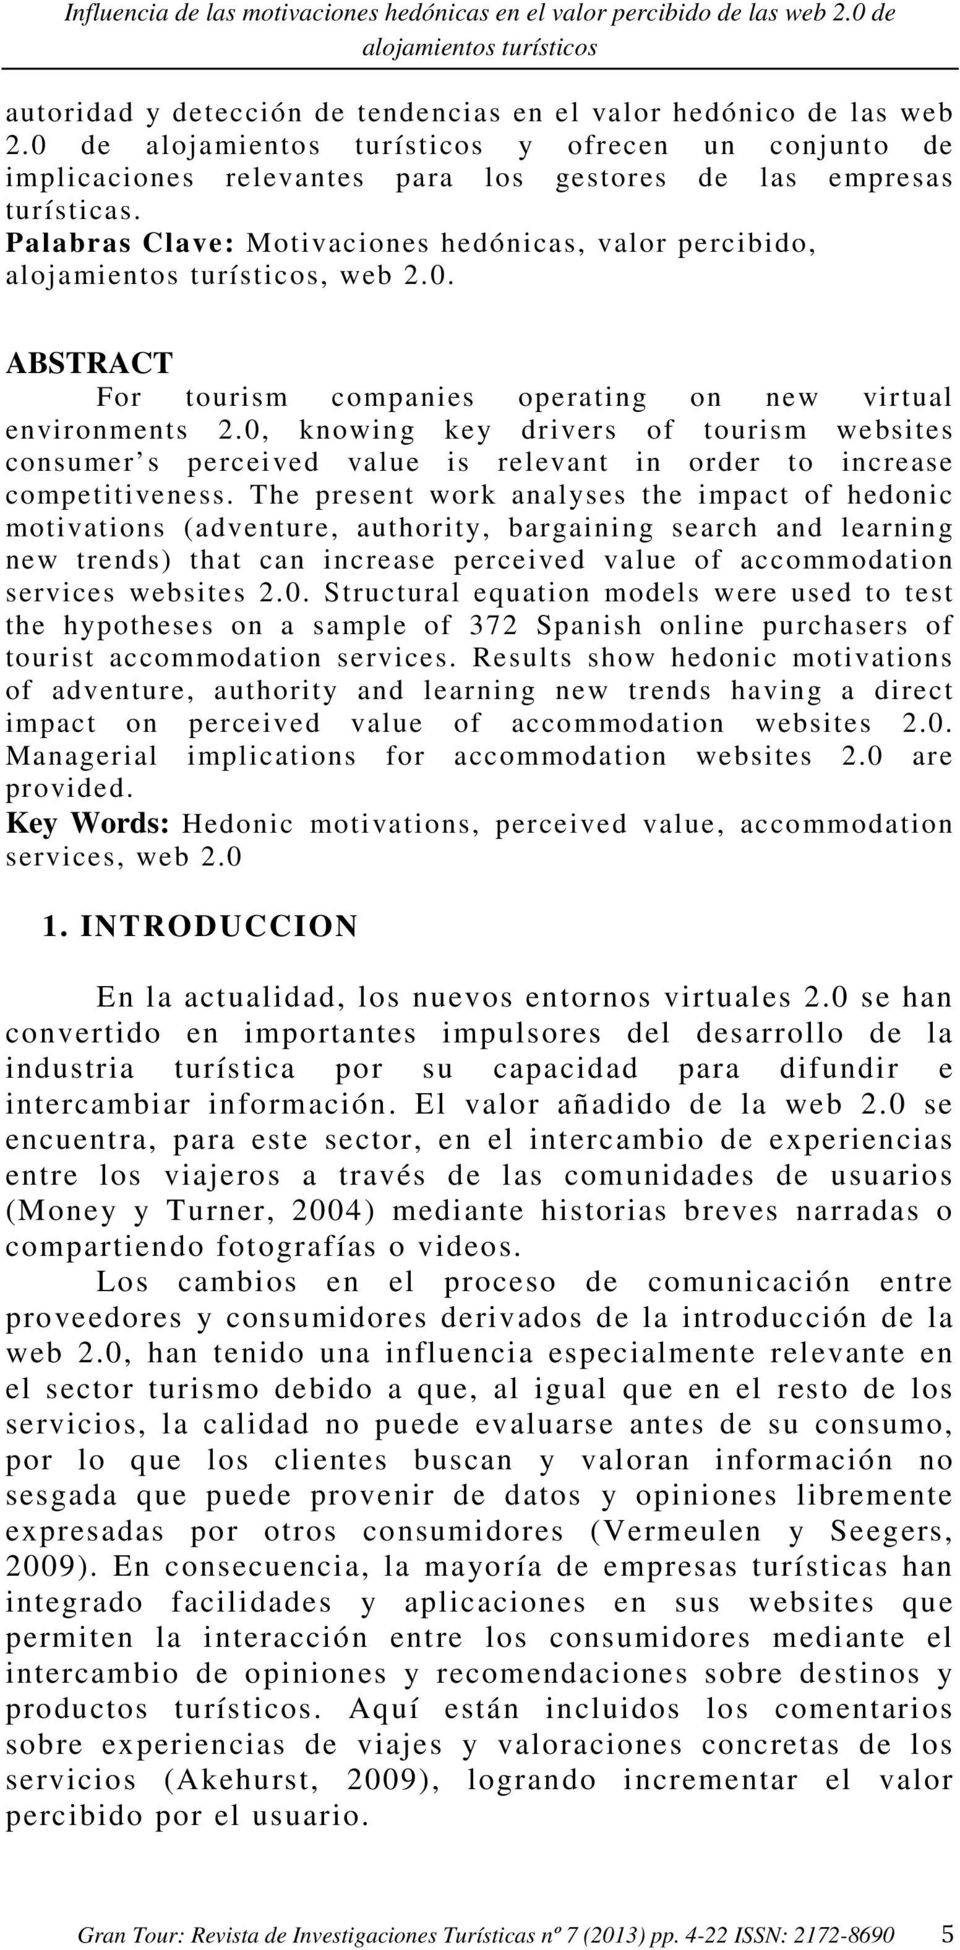 Palabras Clave: Motivaciones hedónicas, valor percibido, alojamientos turísticos, web 2.0. ABSTRACT For tourism companies operating on new virtual environments 2.